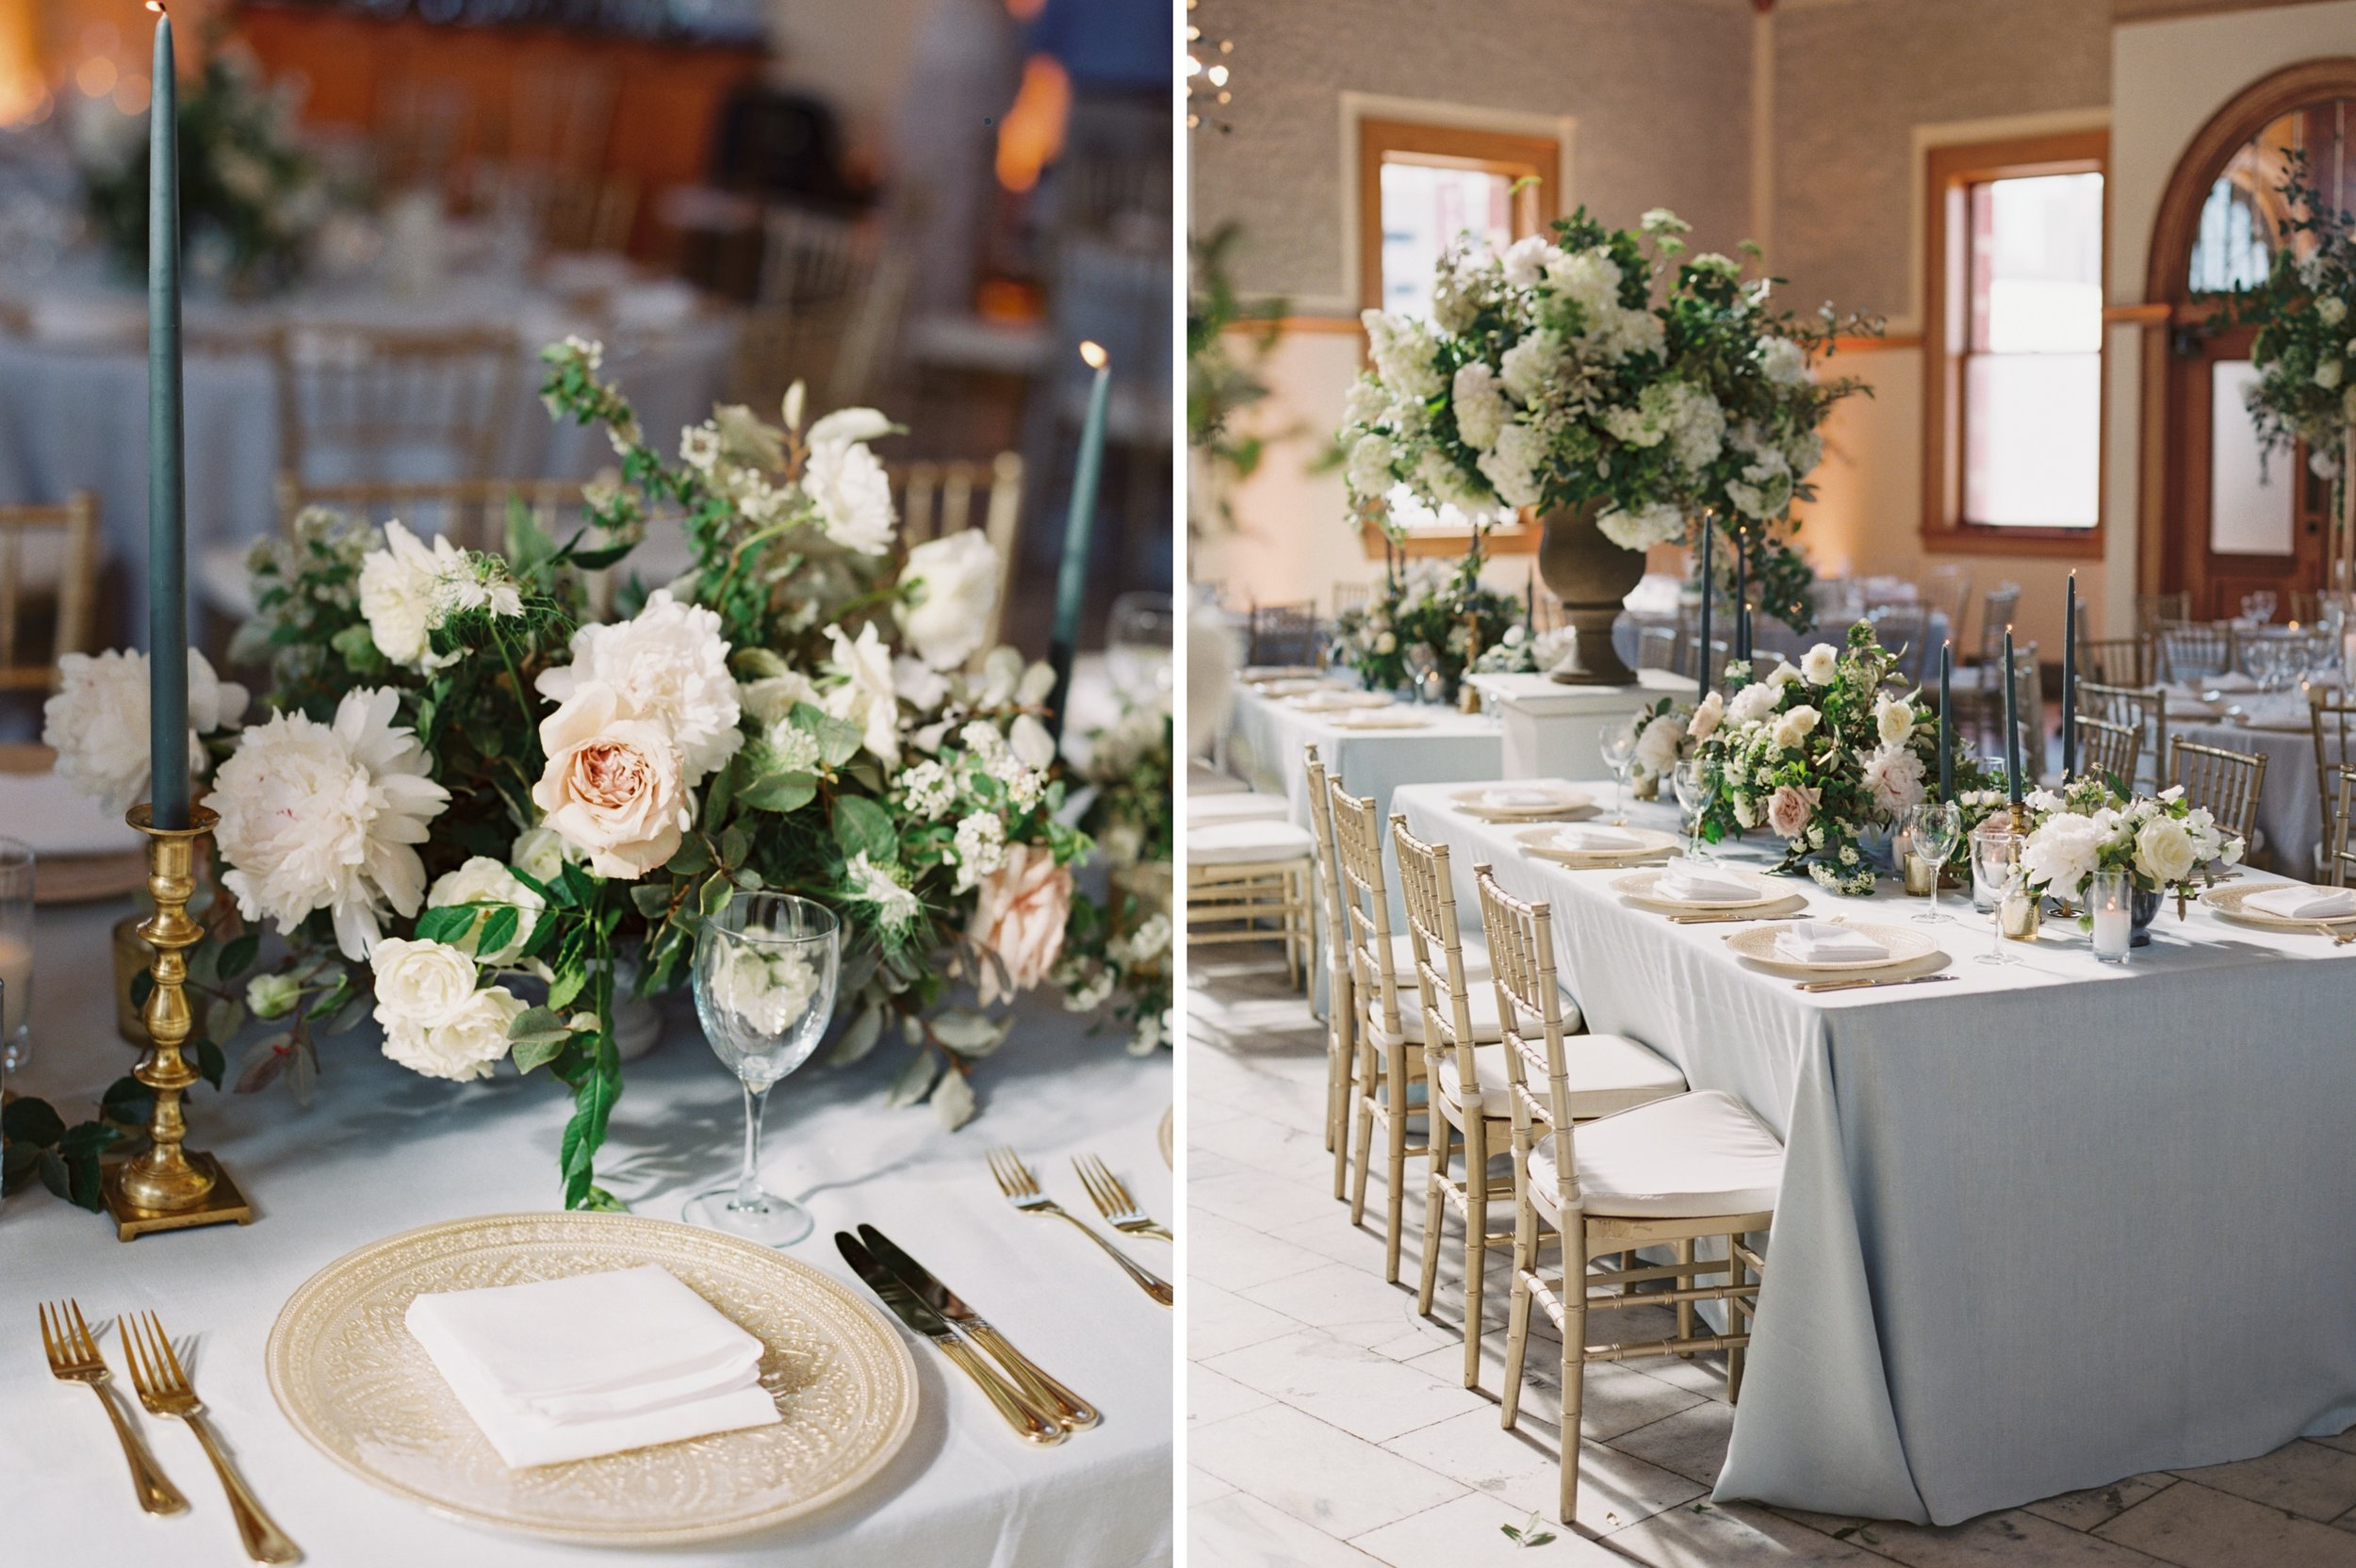 Shannon Skloss Photography Grit & Gold Weddings Fort Worth The Southern Table Ashton Depot Texas La Tavola